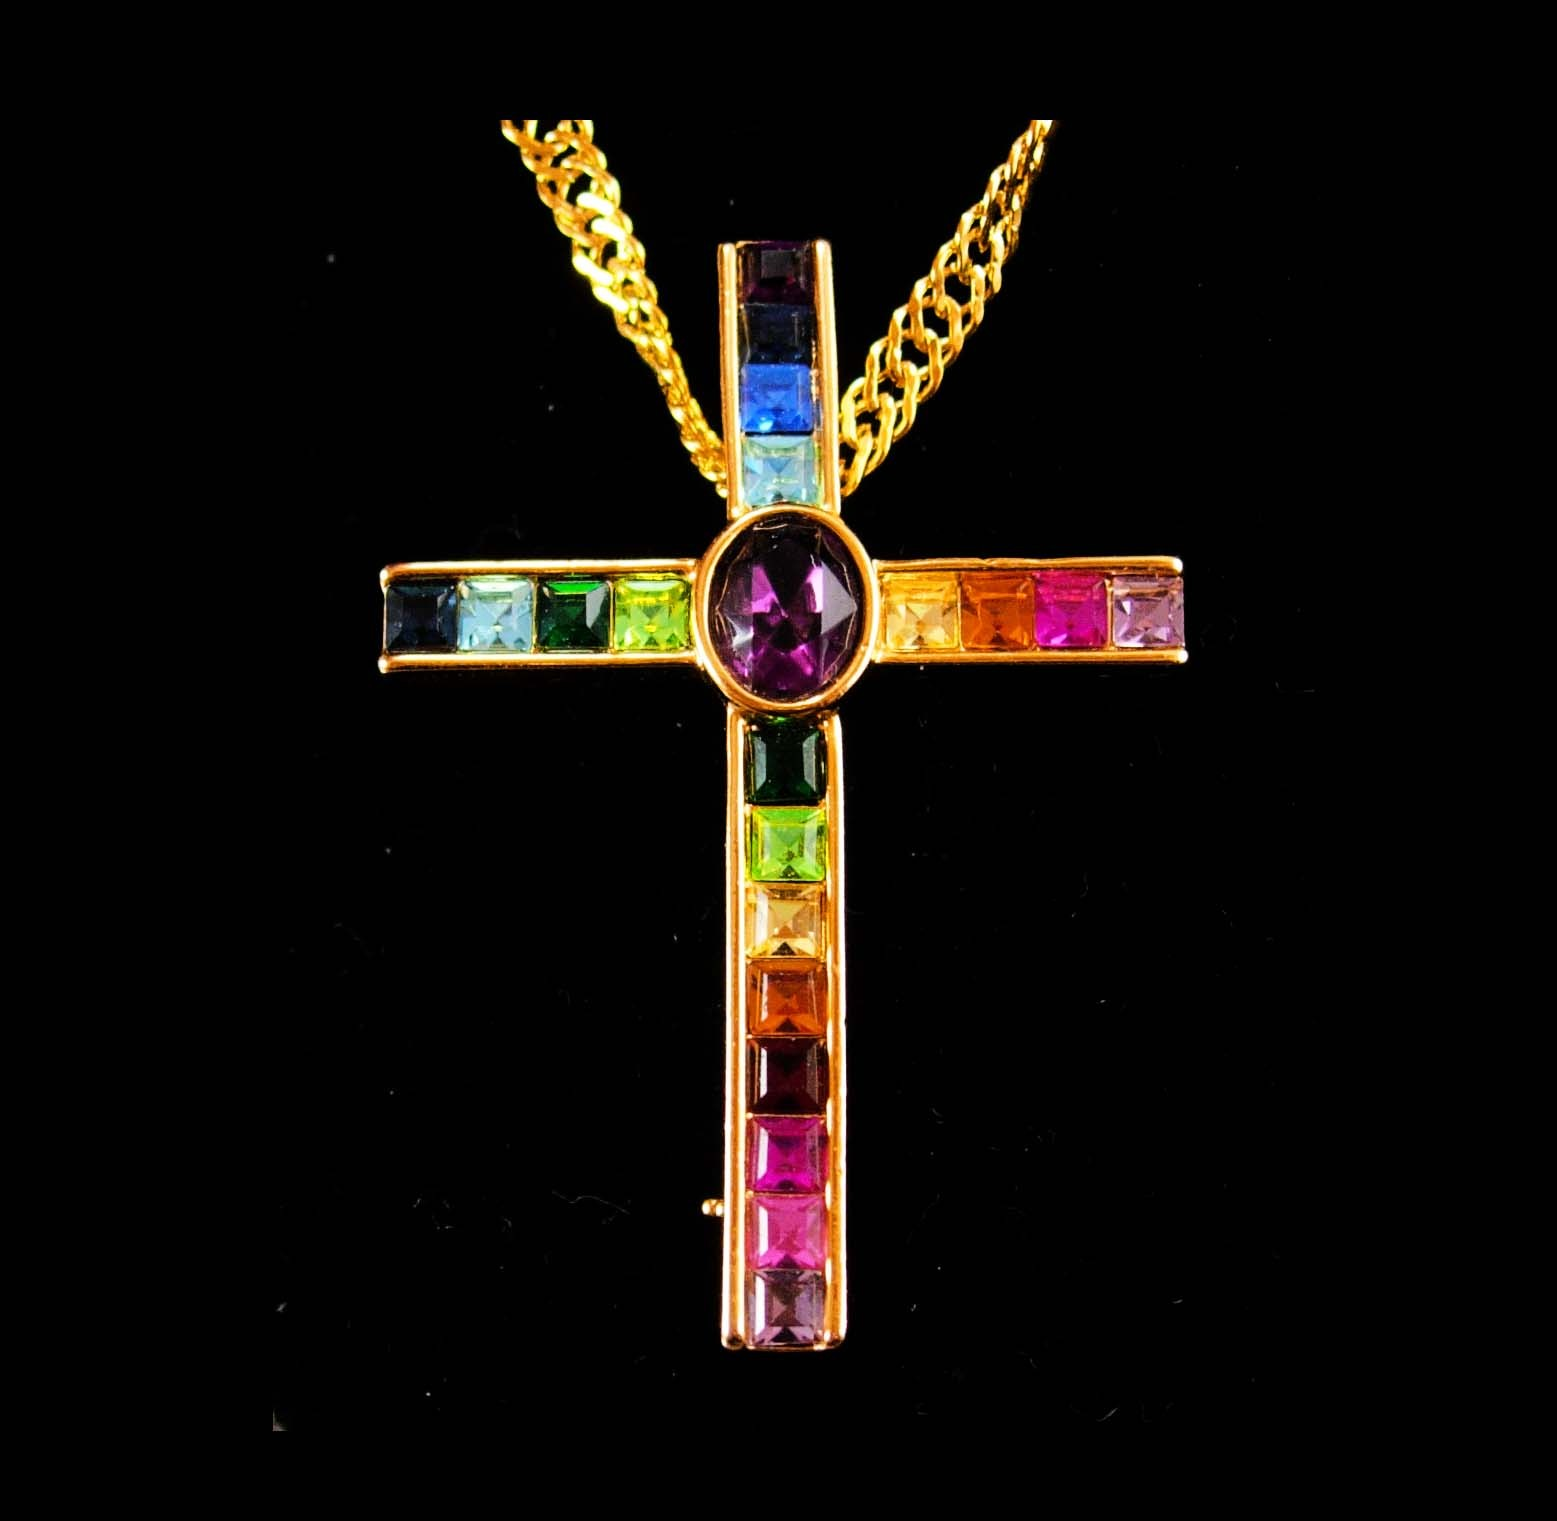 Rainbow Cross necklace pendant Brooch religious christian jewelry Gay interest s